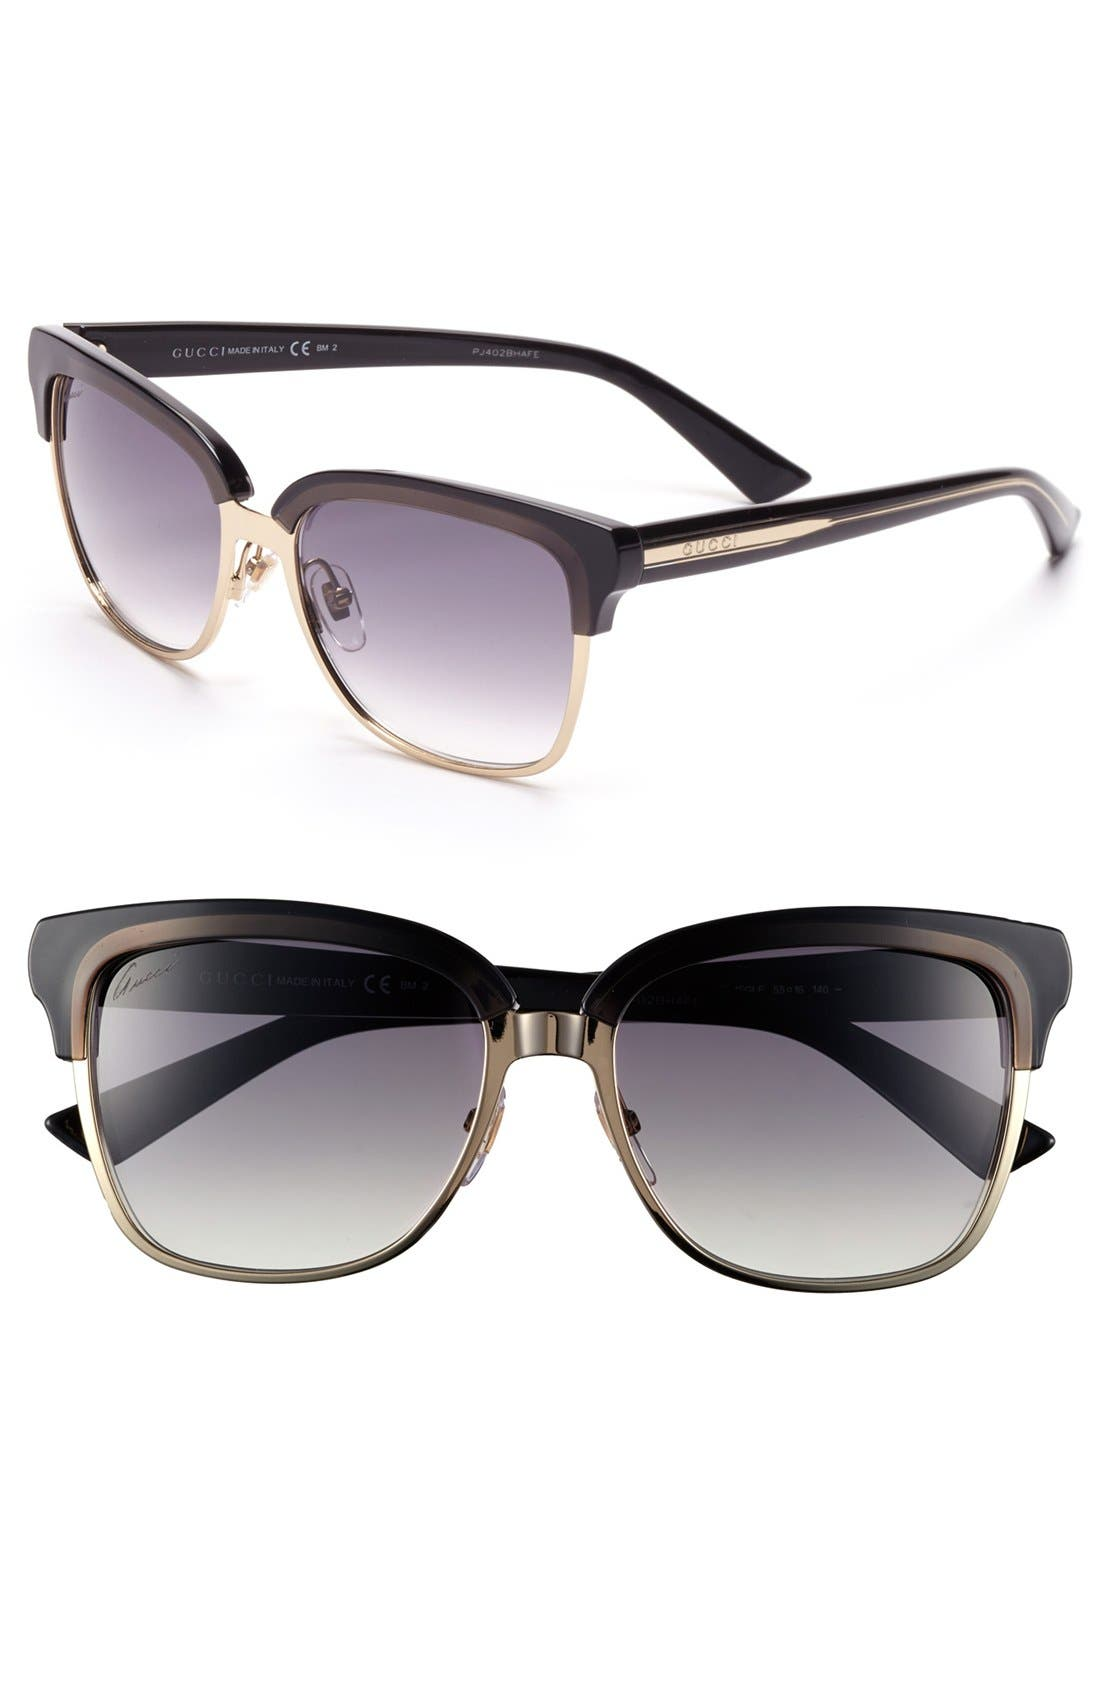 Alternate Image 1 Selected - Gucci 55mm Retro Sunglasses (Online Only)